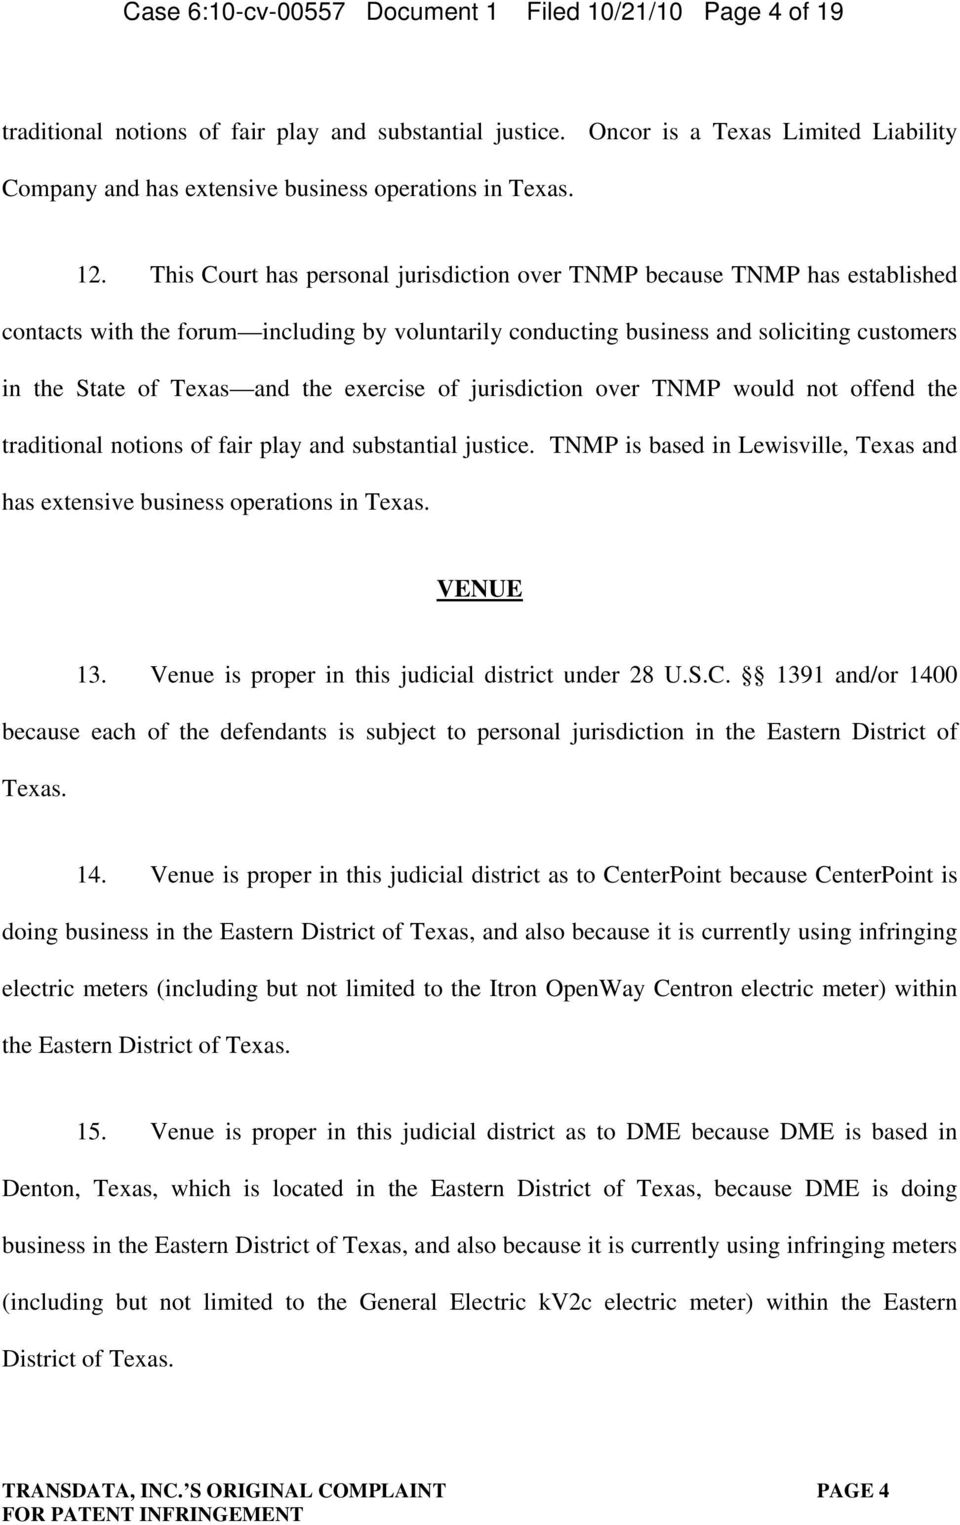 This Court has personal jurisdiction over TNMP because TNMP has established contacts with the forum including by voluntarily conducting business and soliciting customers in the State of Texas and the